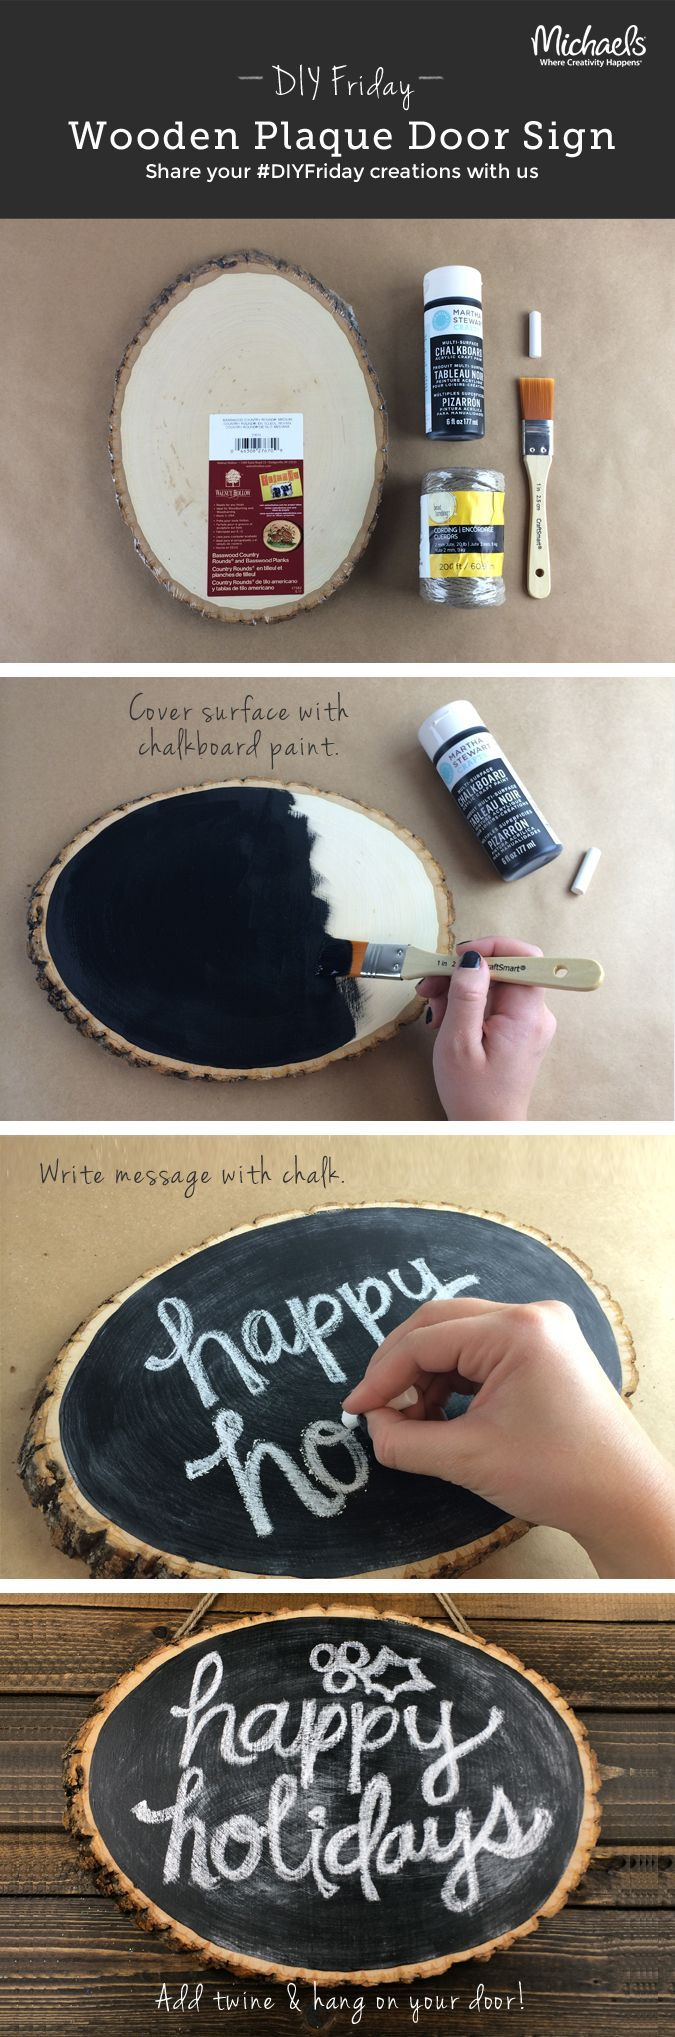 DIY Friday Wooden Plaque Door Sign - customizable for holidays loisirs créatifs